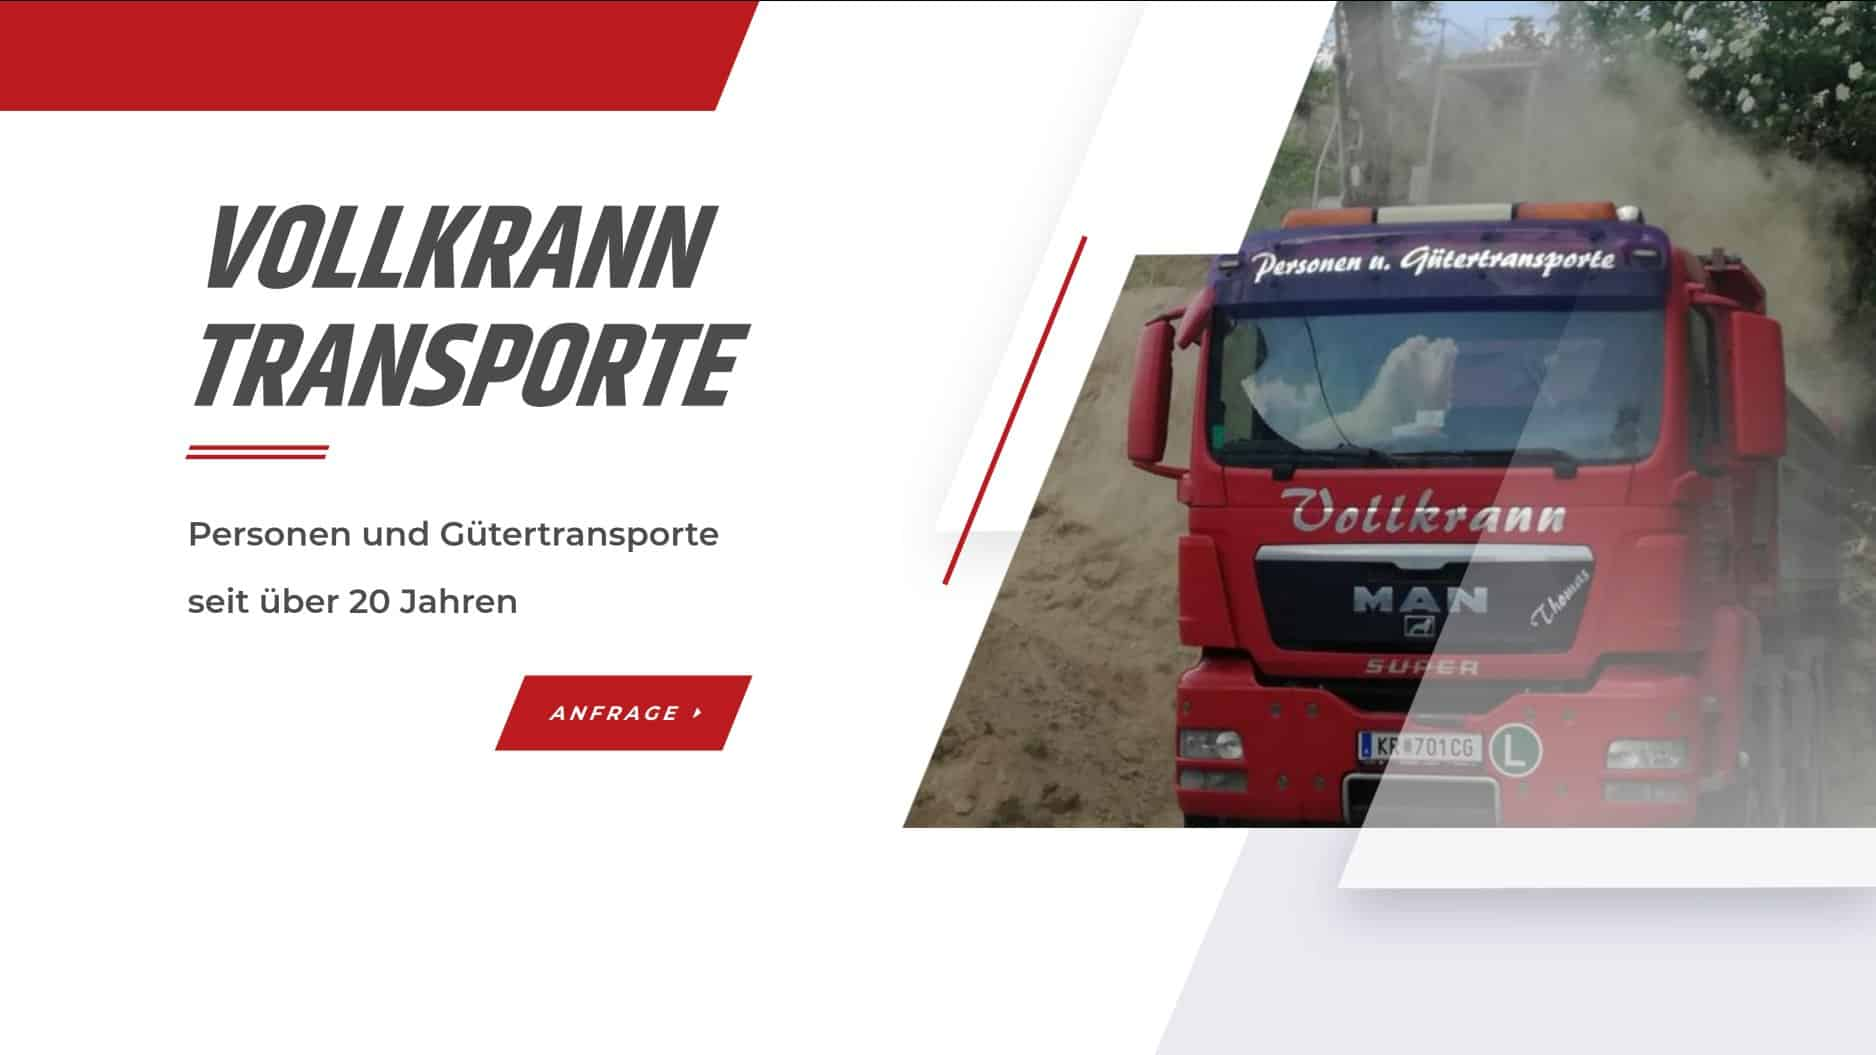 https://vollkrann-transporte.at